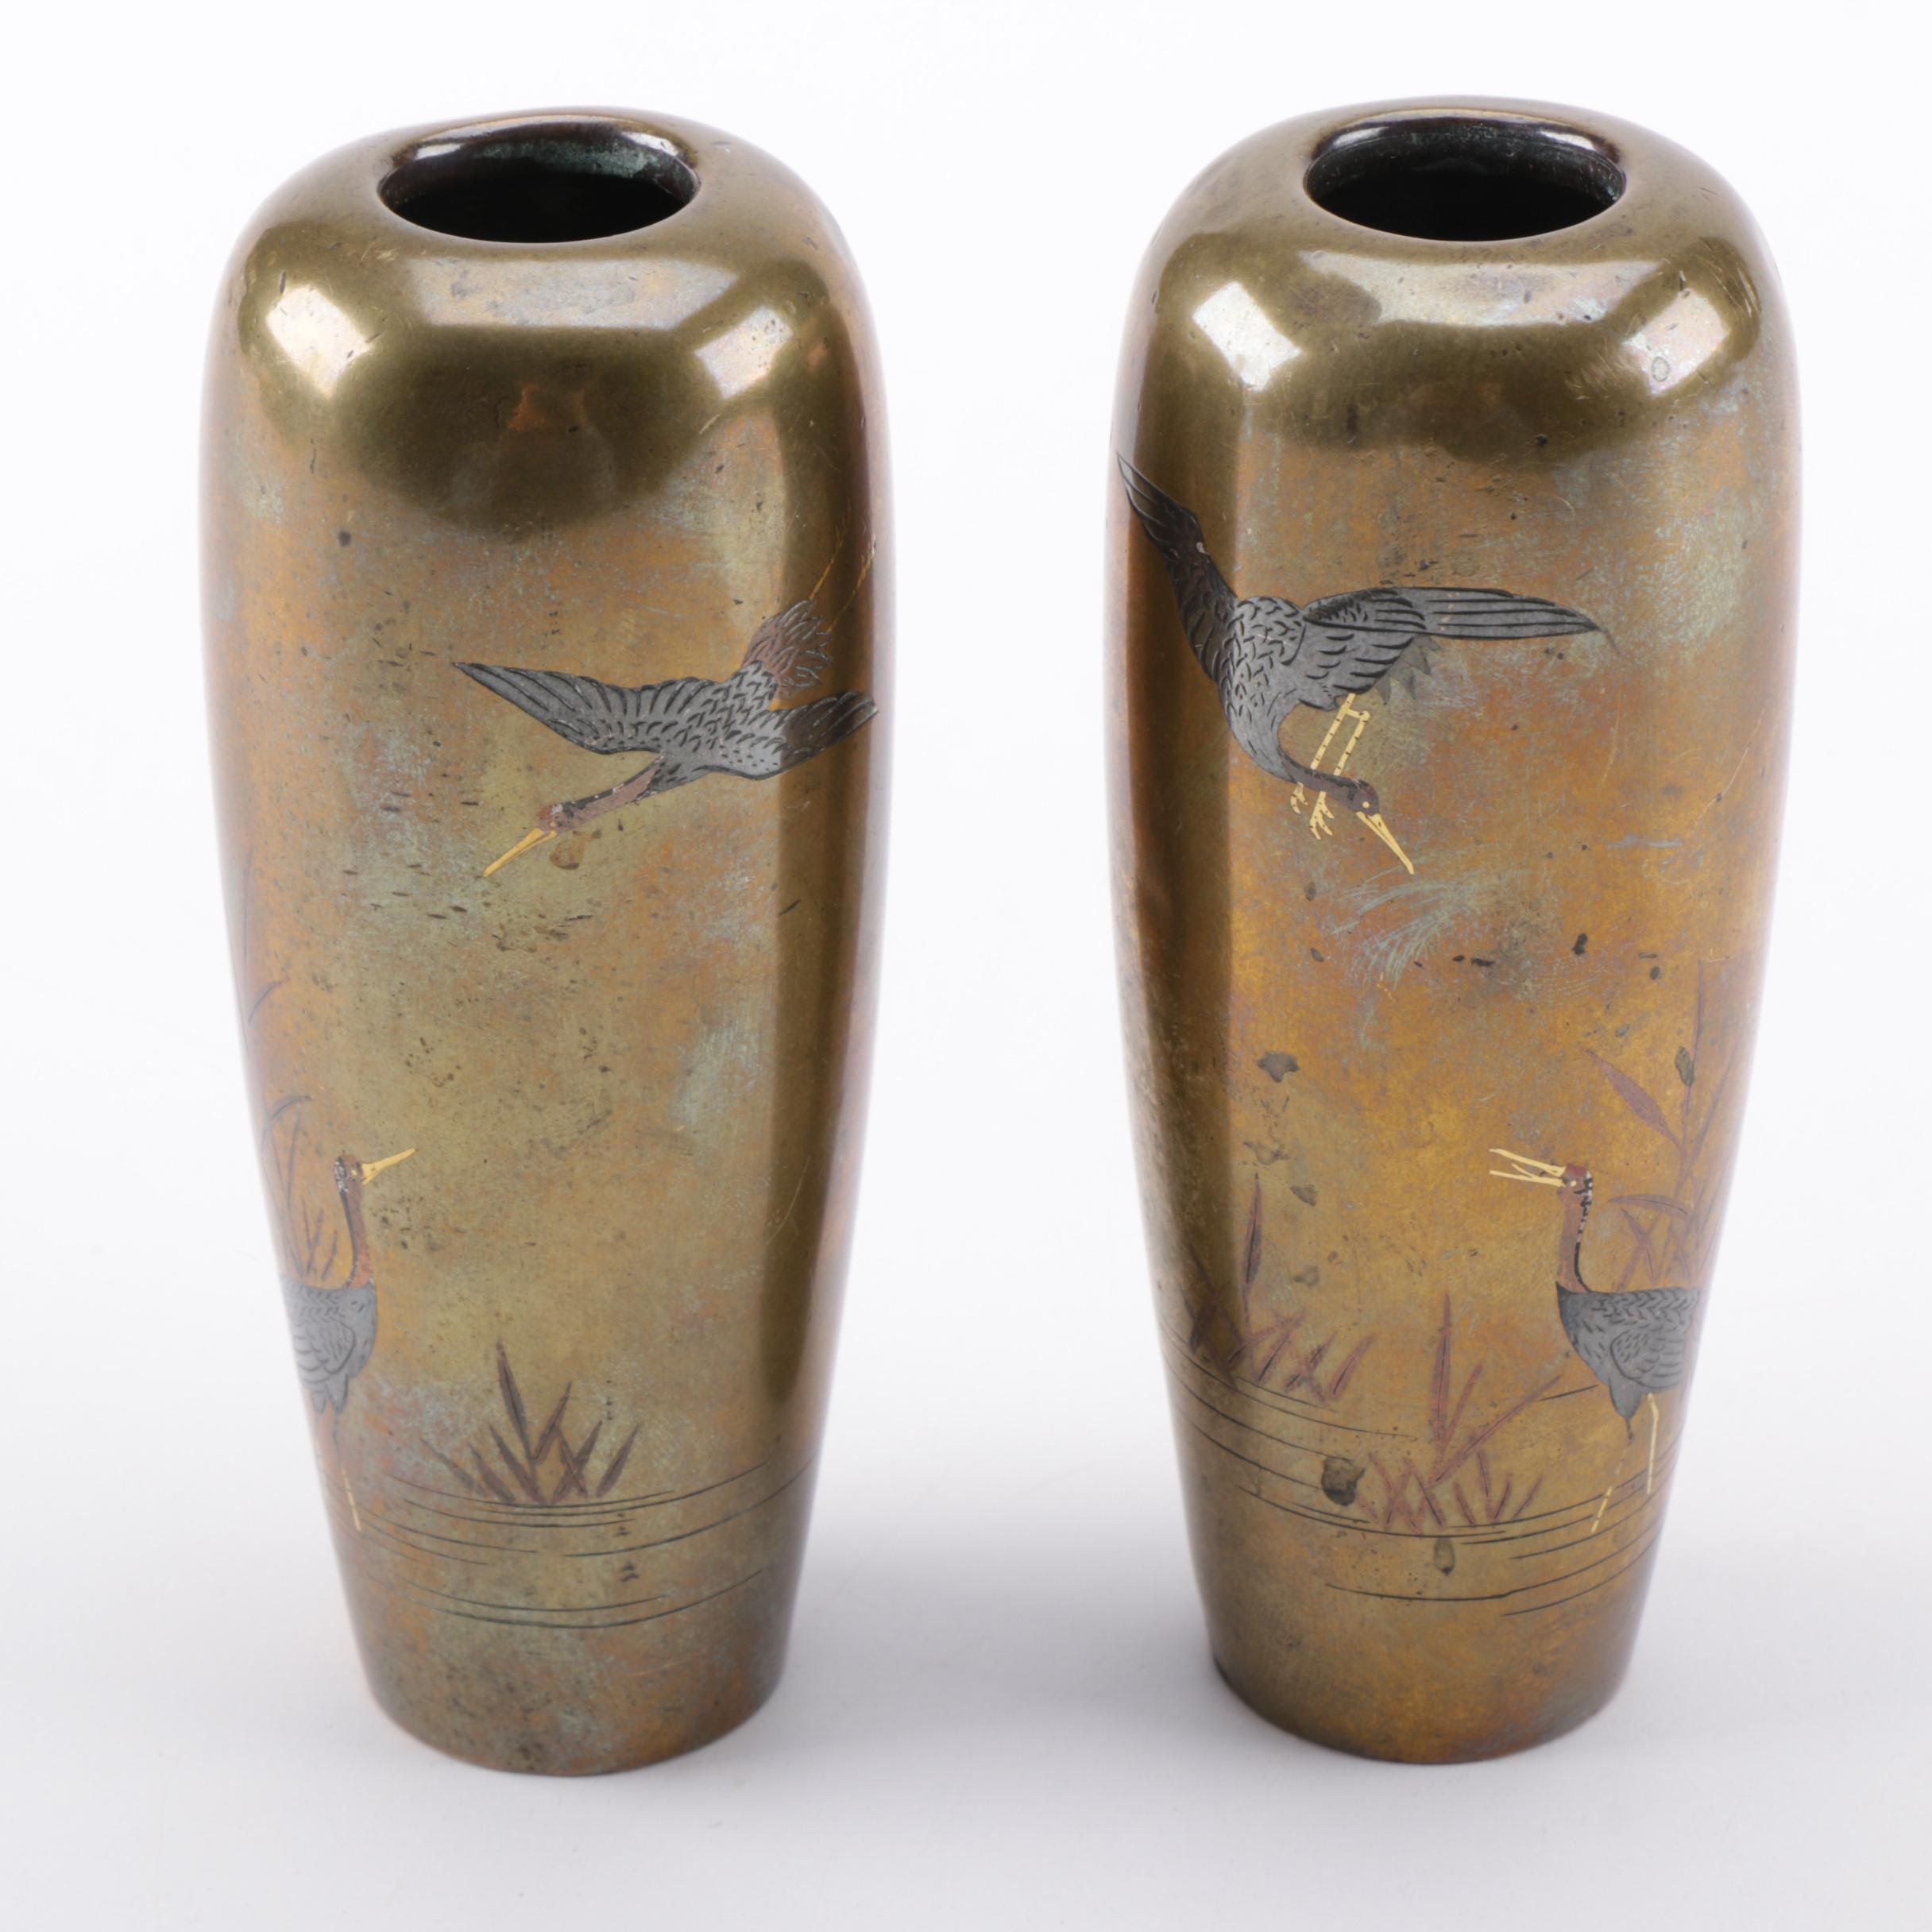 19th Century Japanese Bronze Vases from Nogawa Studio Kyoto